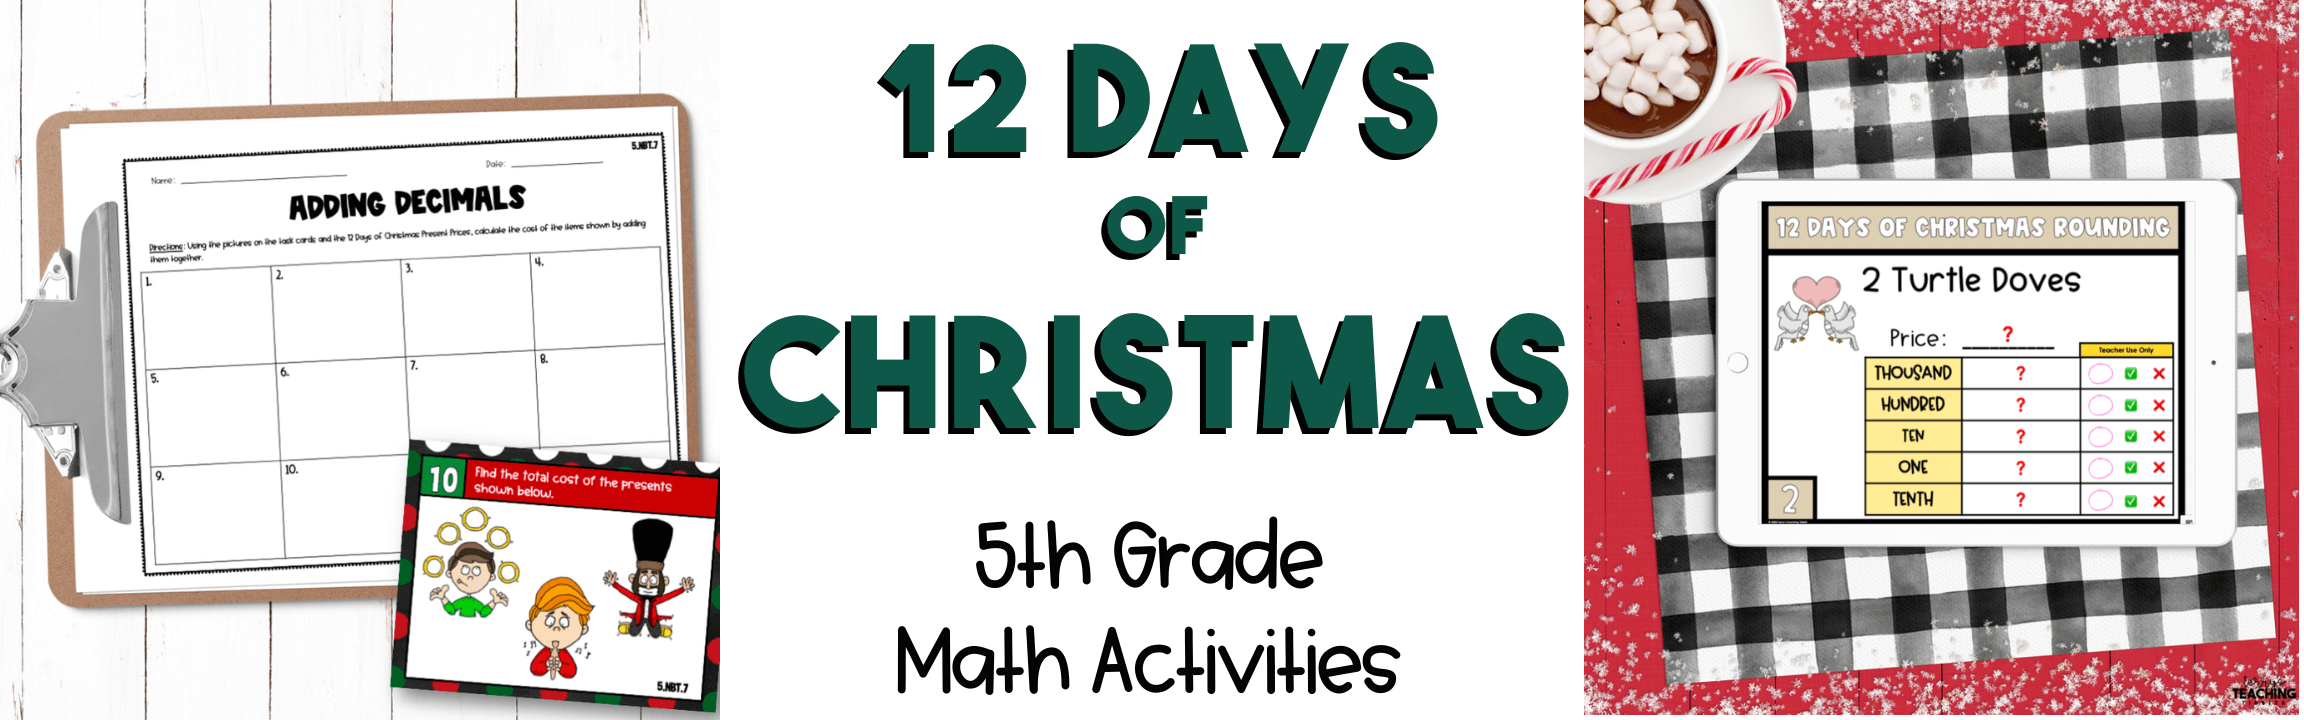 12 Days of Christmas Math Activities